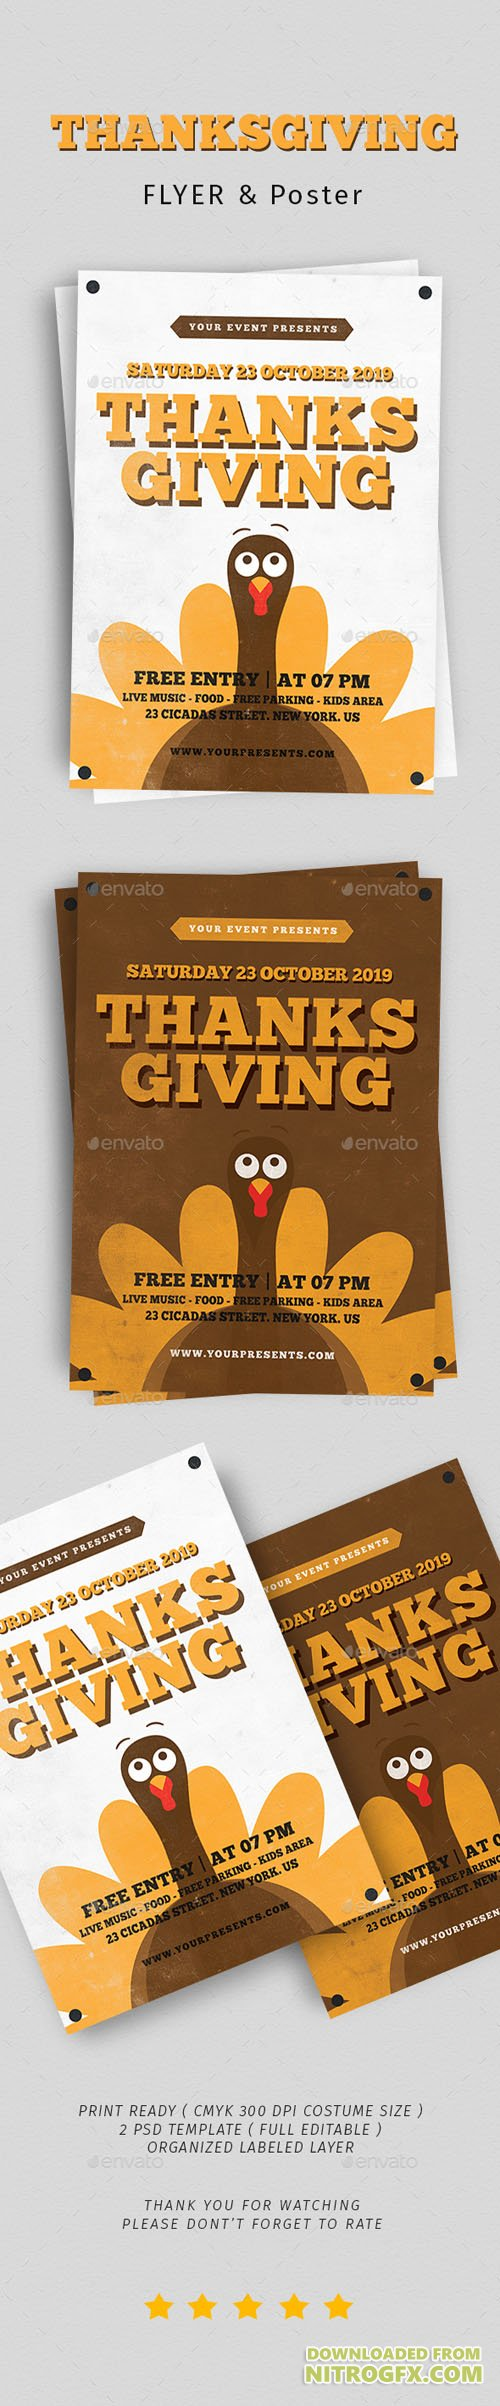 Thanksgiving Flyer Vol. 5 20811739